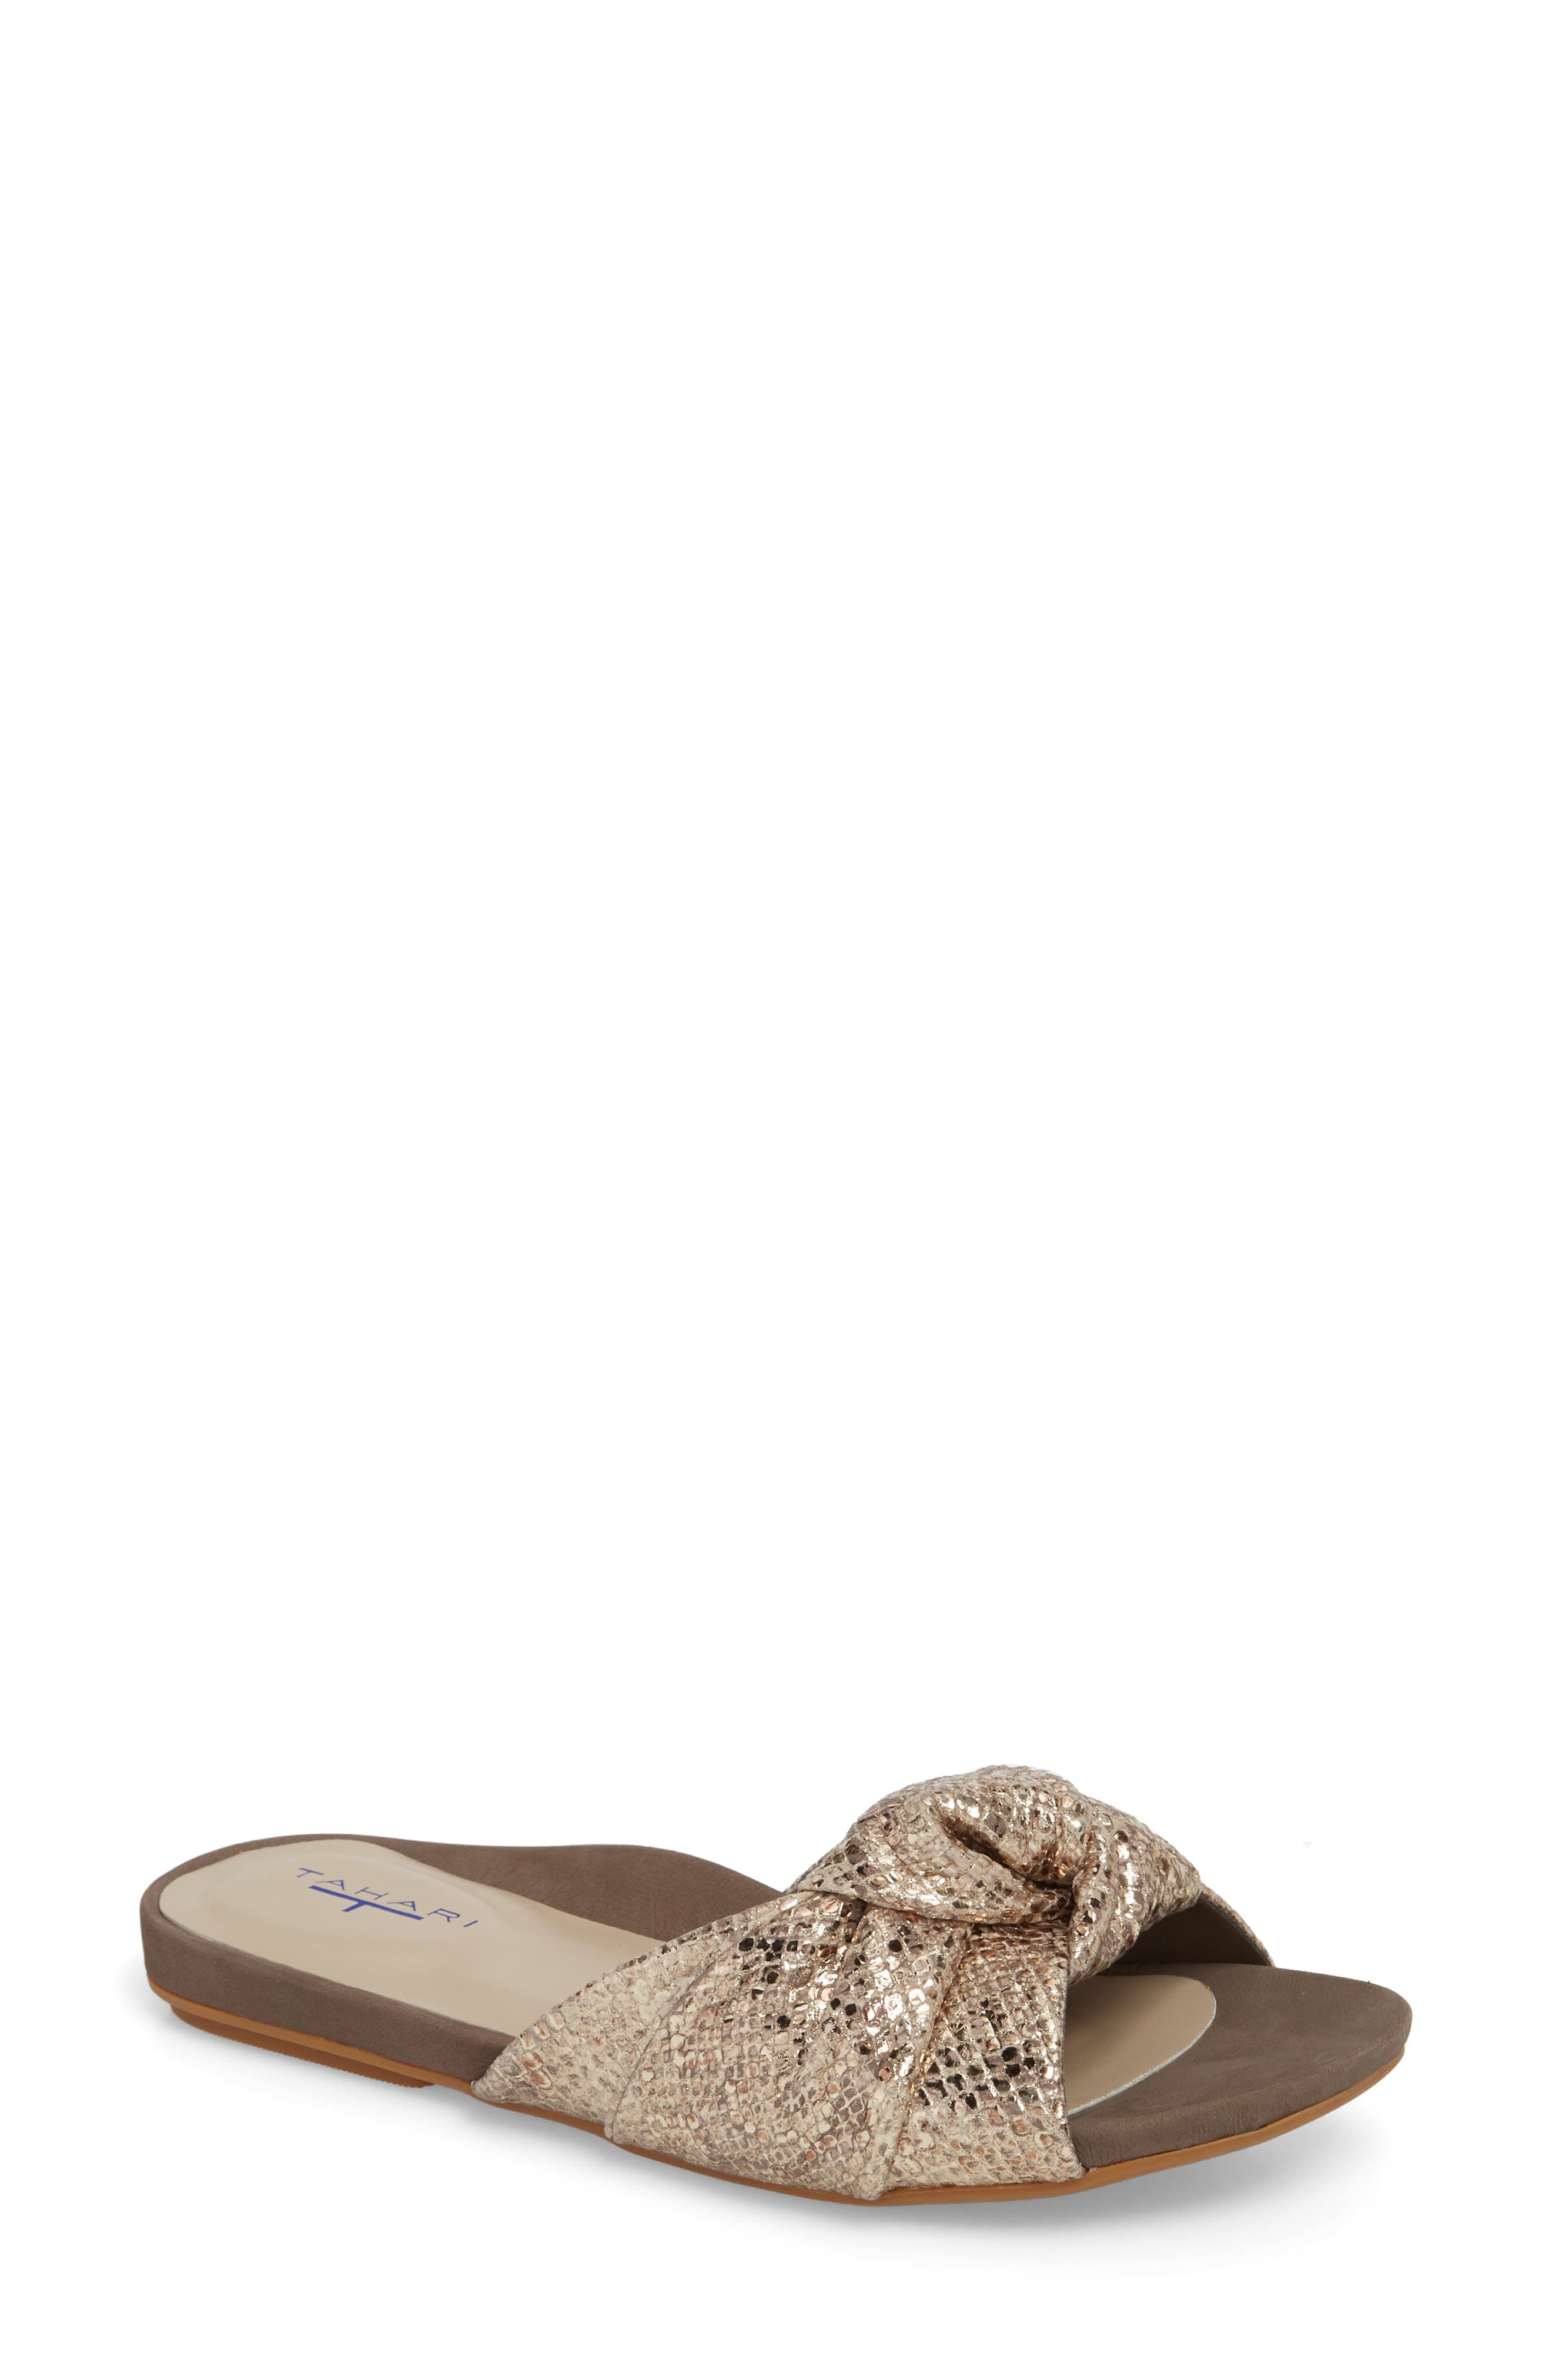 Lauren Slide Sandal,                         Main,                         color, Taupe-Gold Suede